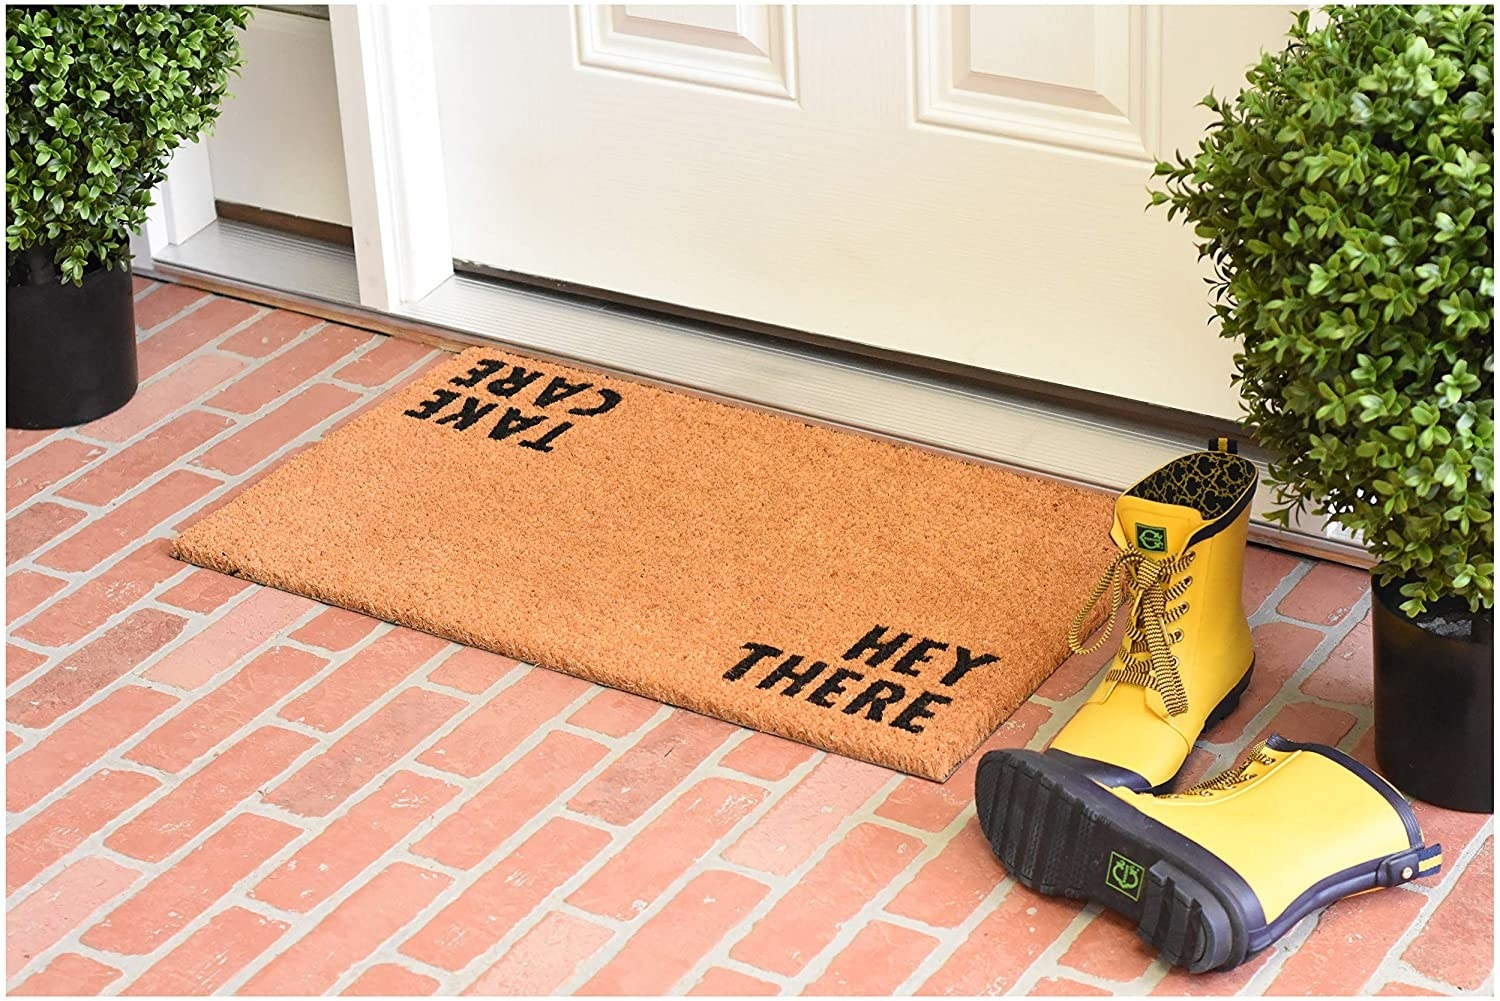 """exterior door with natural color welcome mat that says """"hey there"""" when entering the house, """"take care"""" when leaving"""